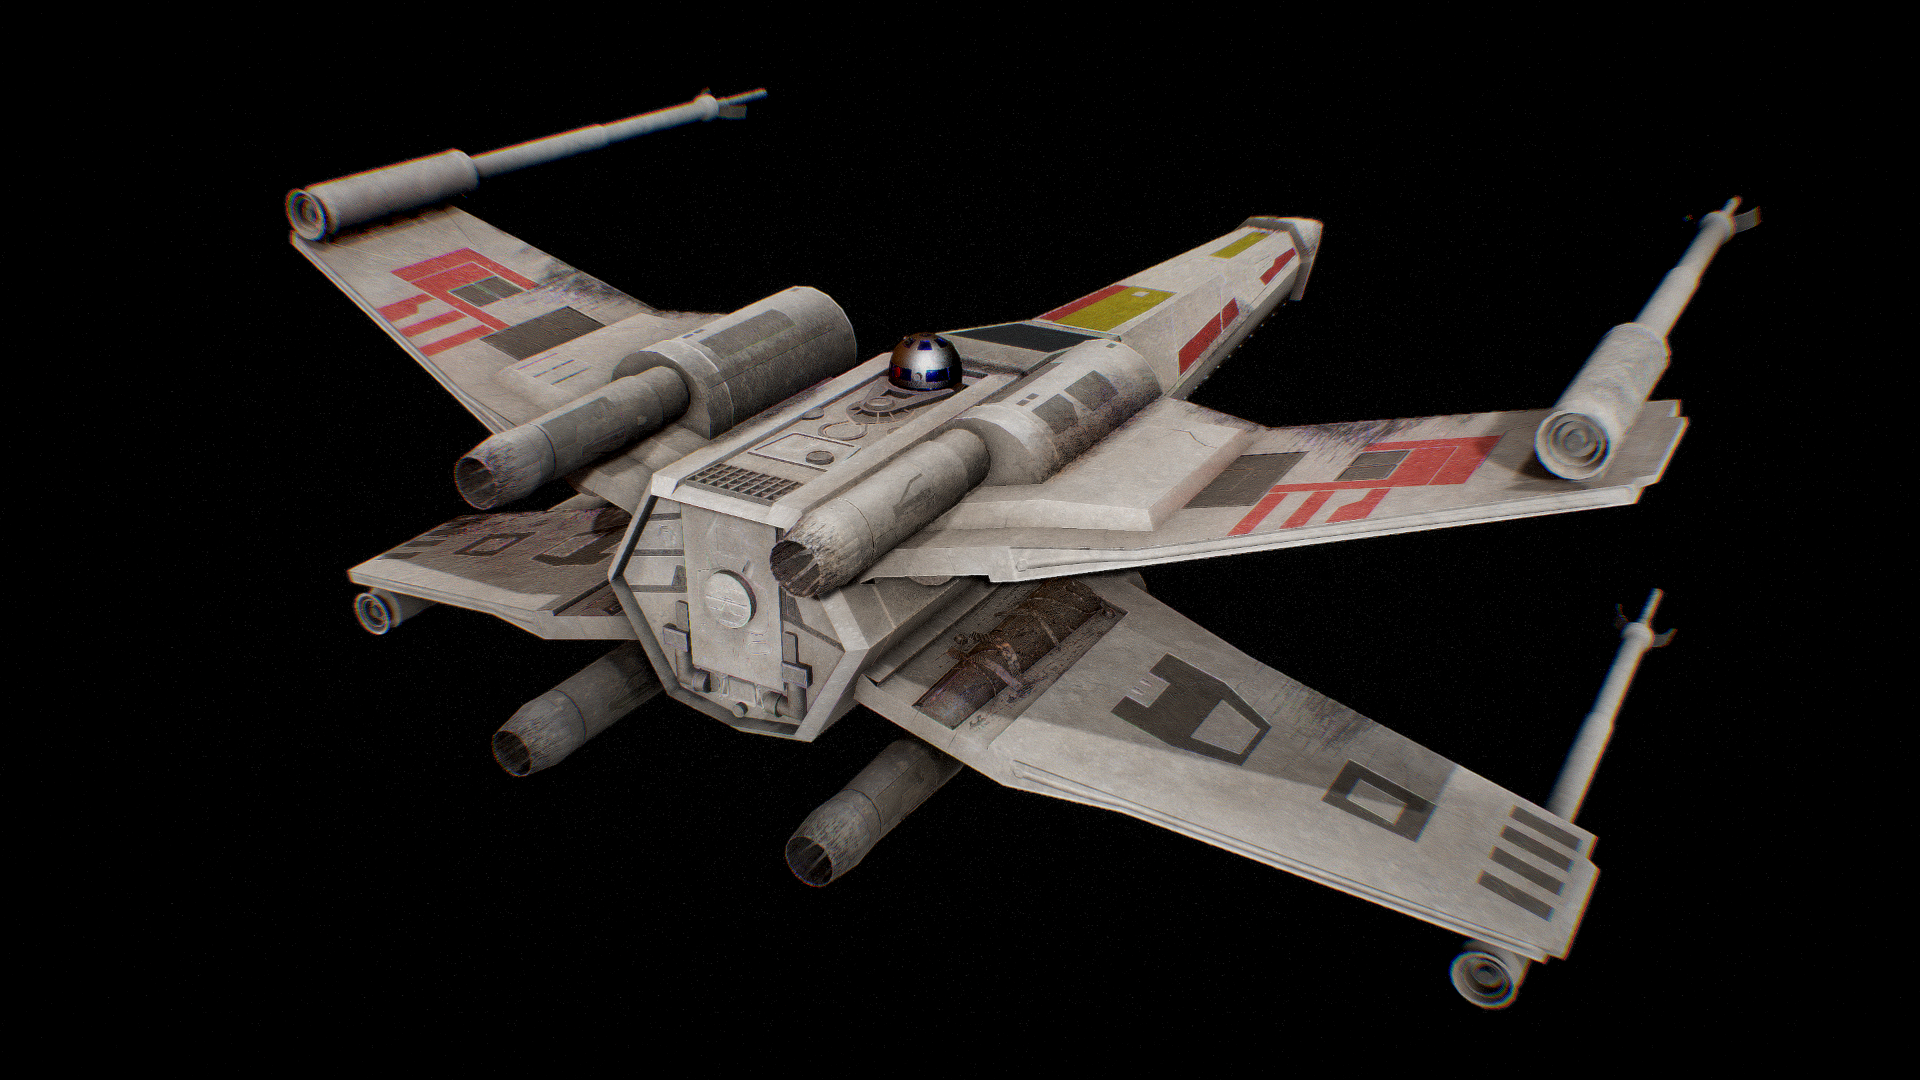 Star Wars' X Wing